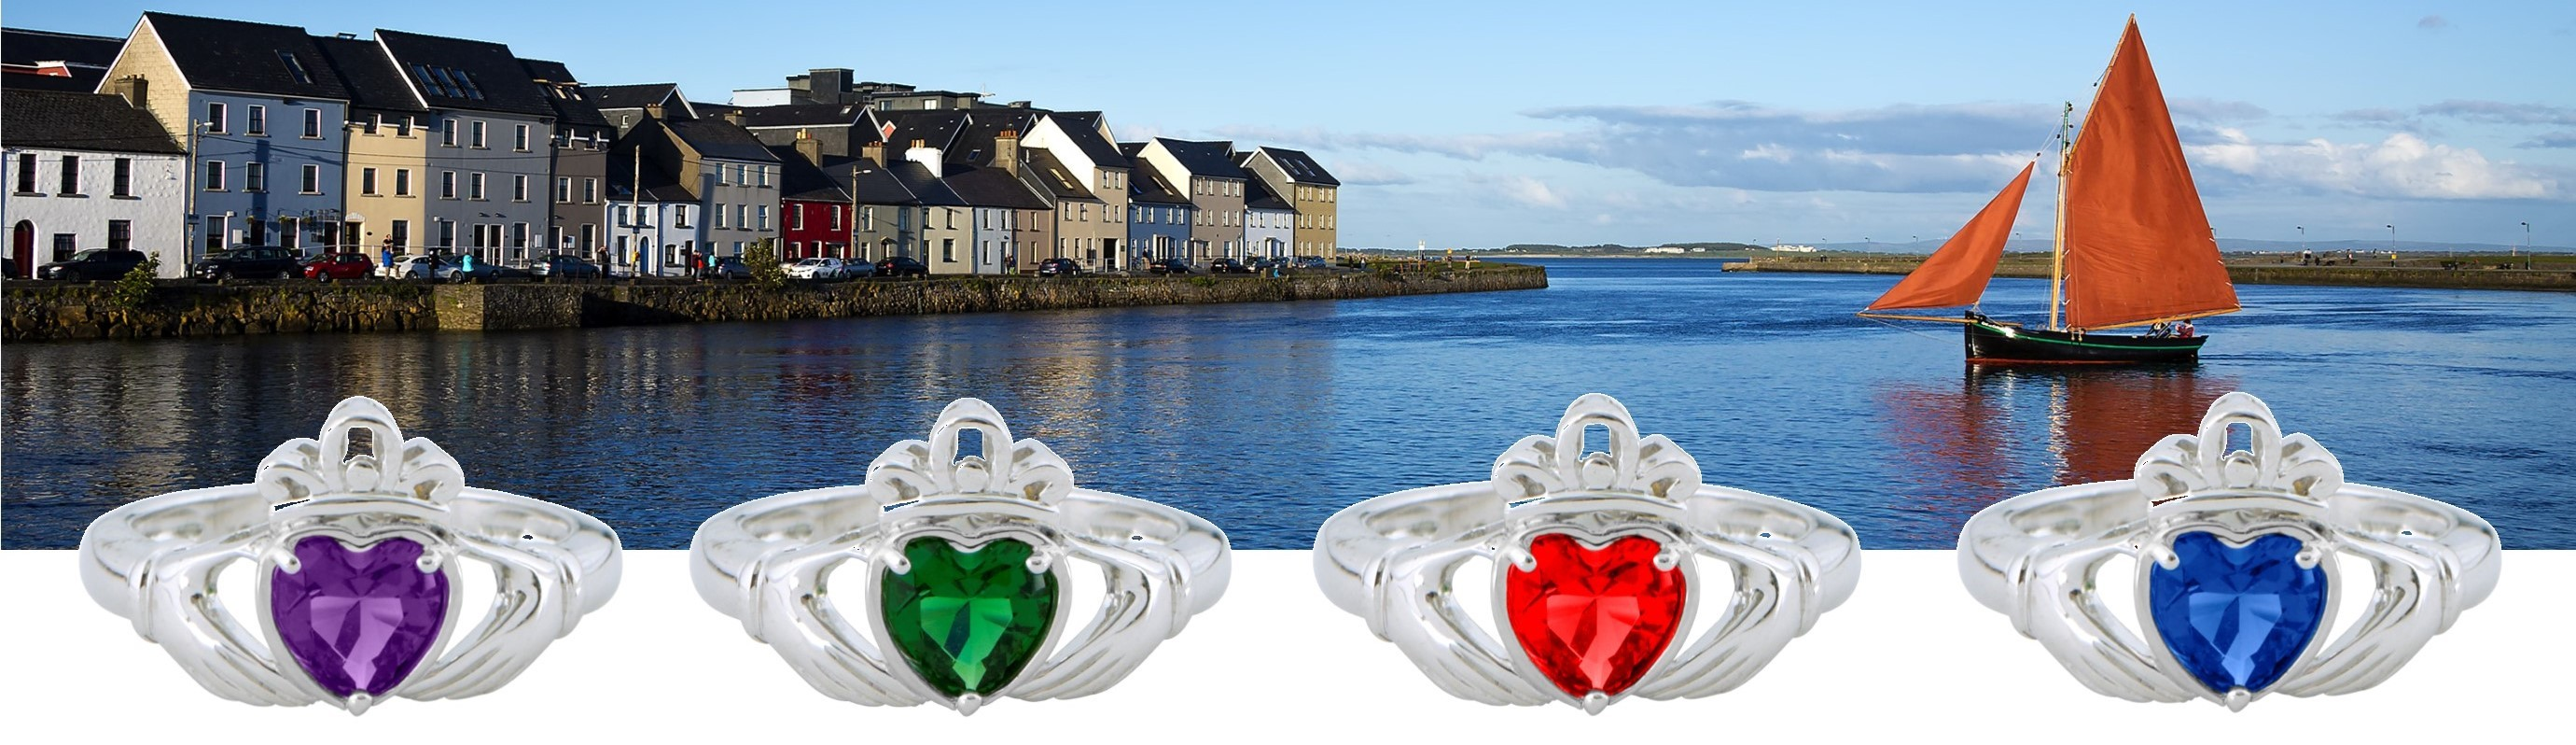 claddagh rings claddagh ring meaning